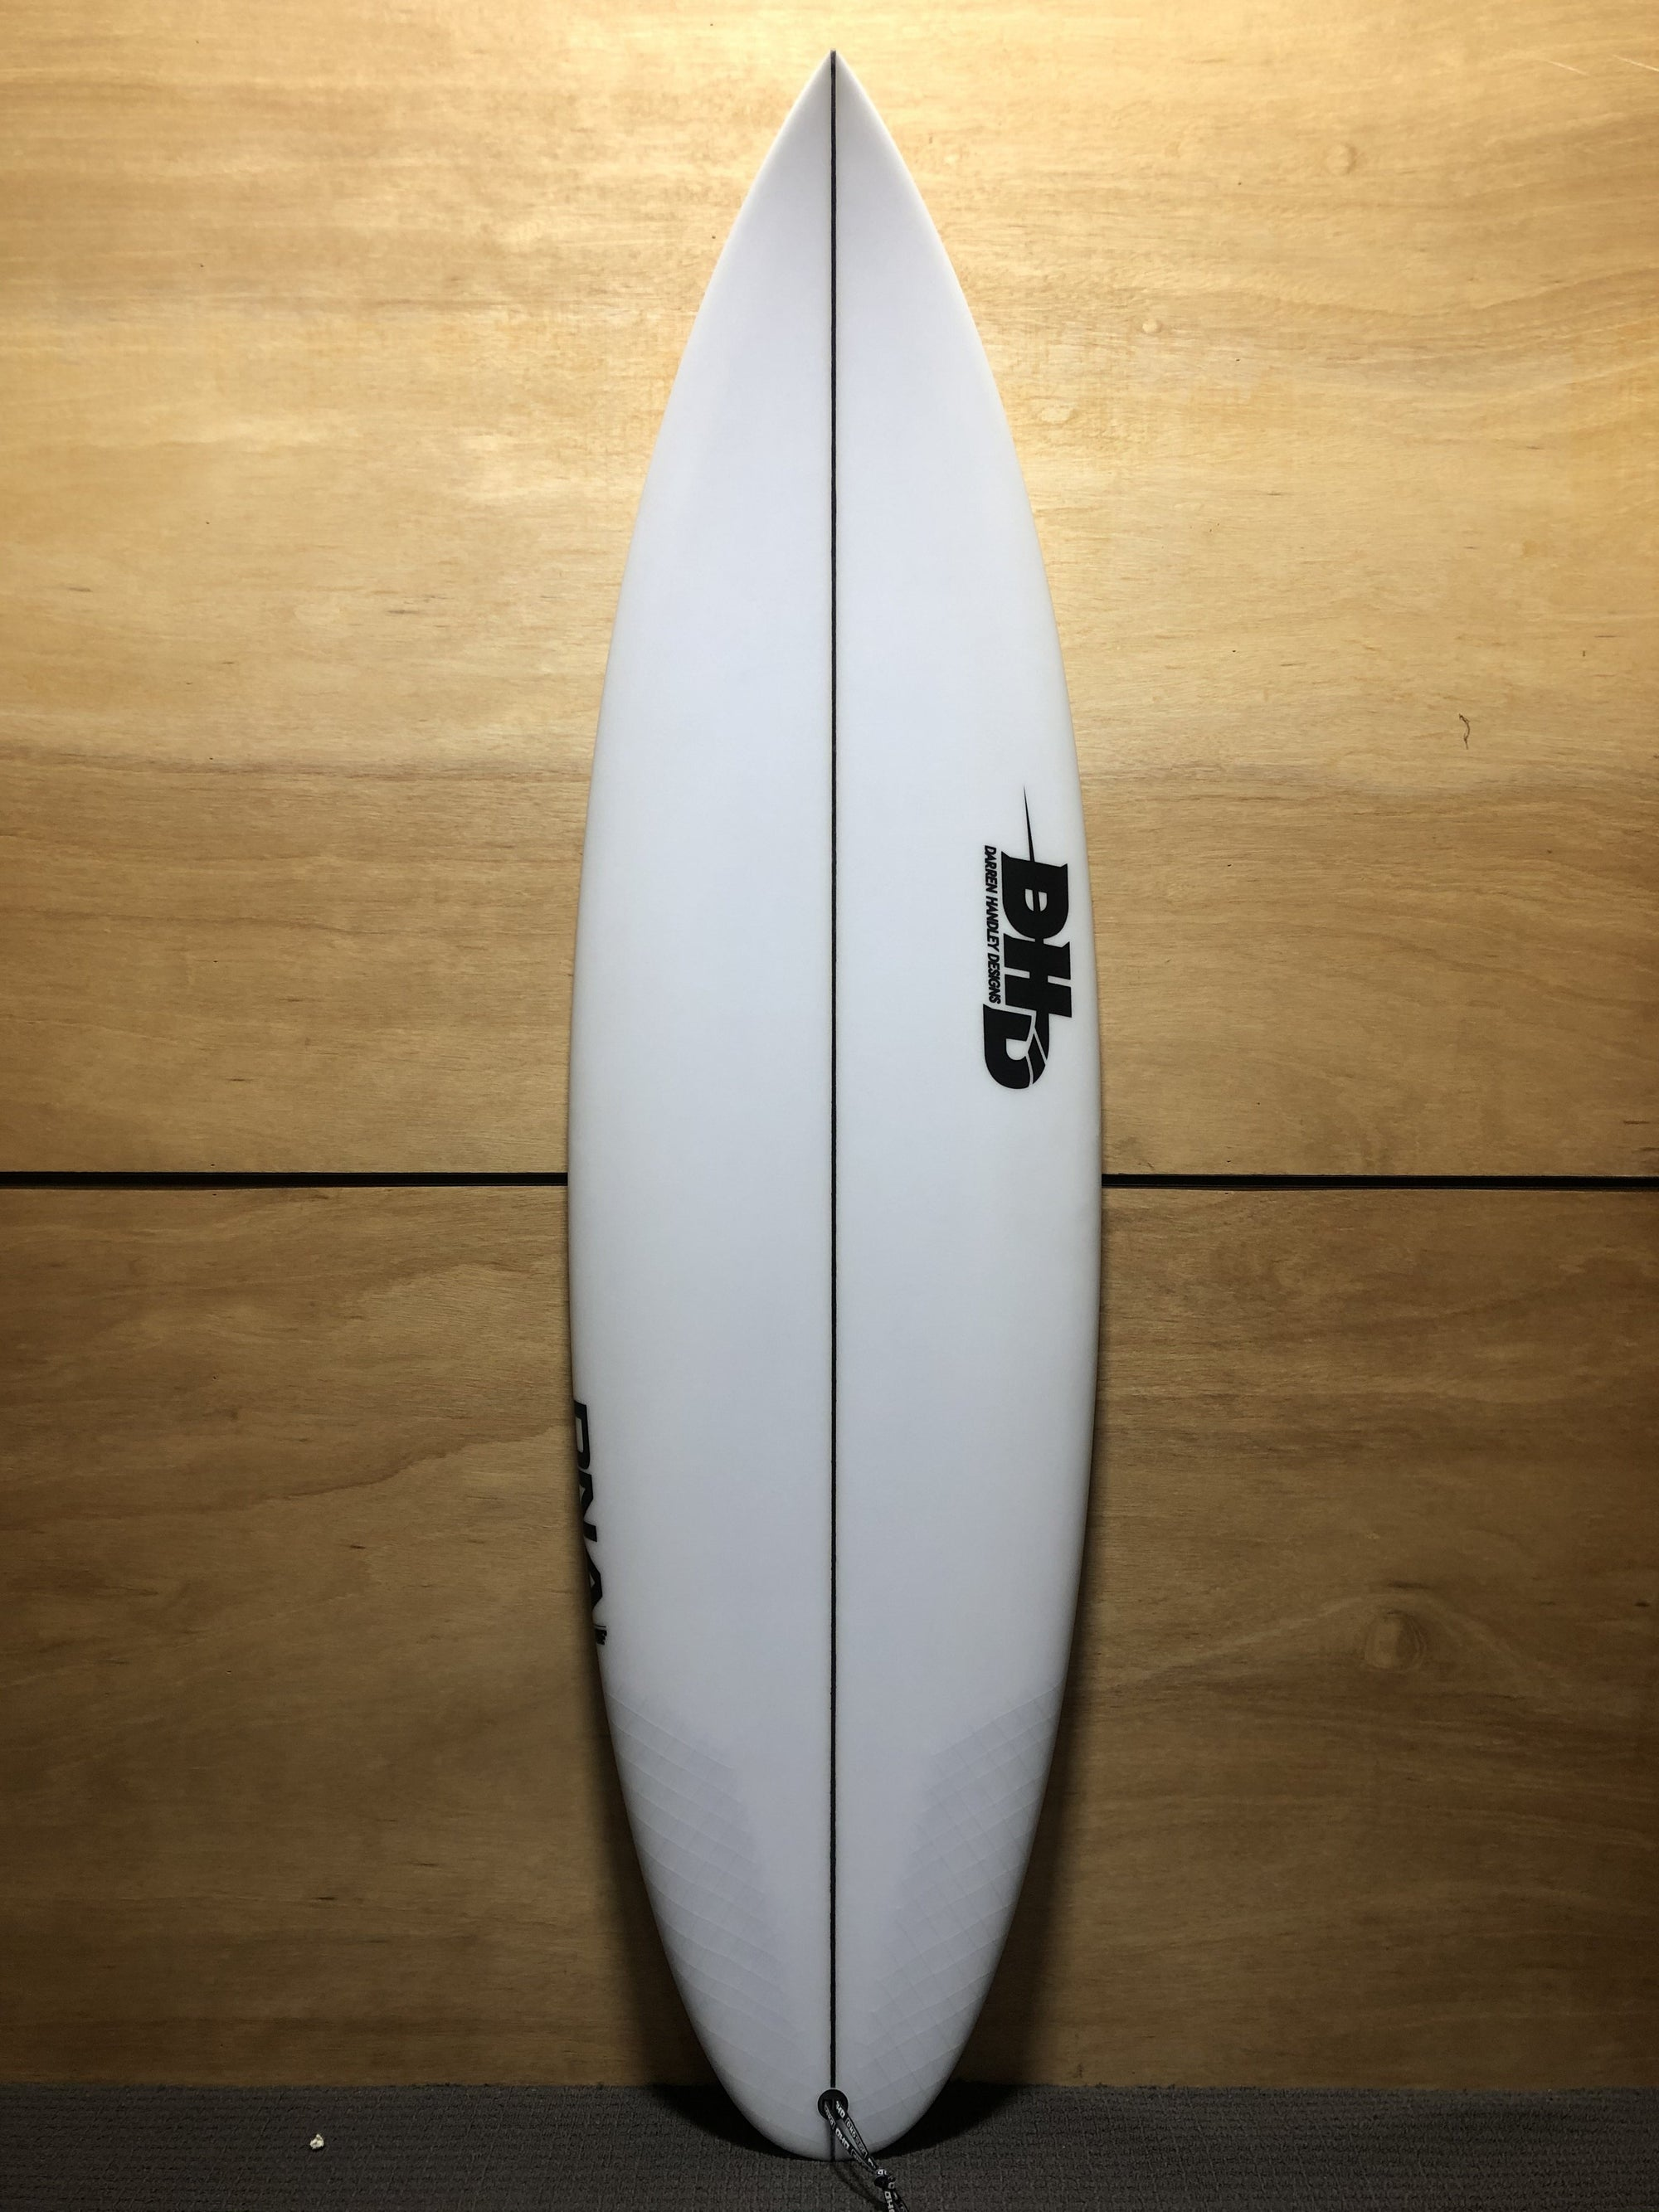 DHD MF DNA Round Tail - Board Store DHDSurfboard